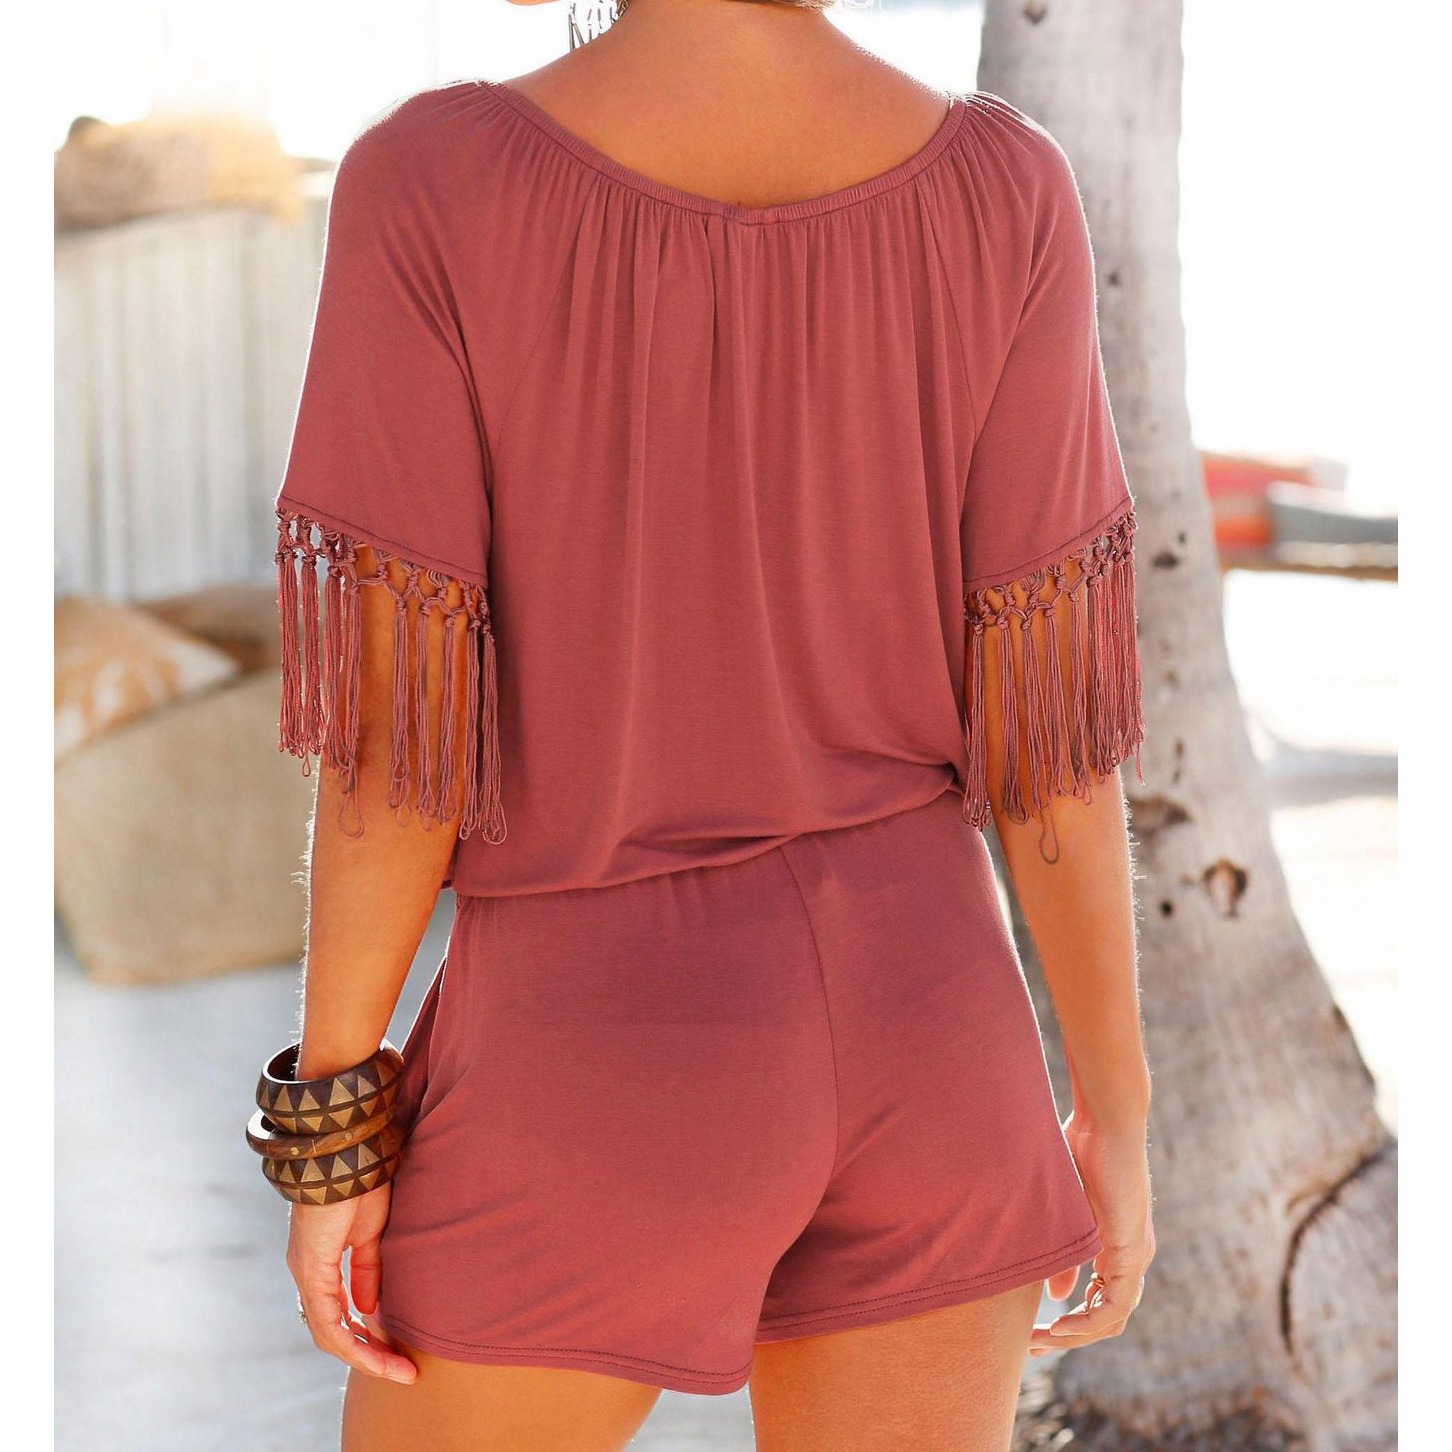 Casual Women Summer Playsuits Sexy Slash Neck Tassel Beach Jumpsuits Shorts Overalls Boho 2018 Girls Pockets Rompers XXL GV923 4